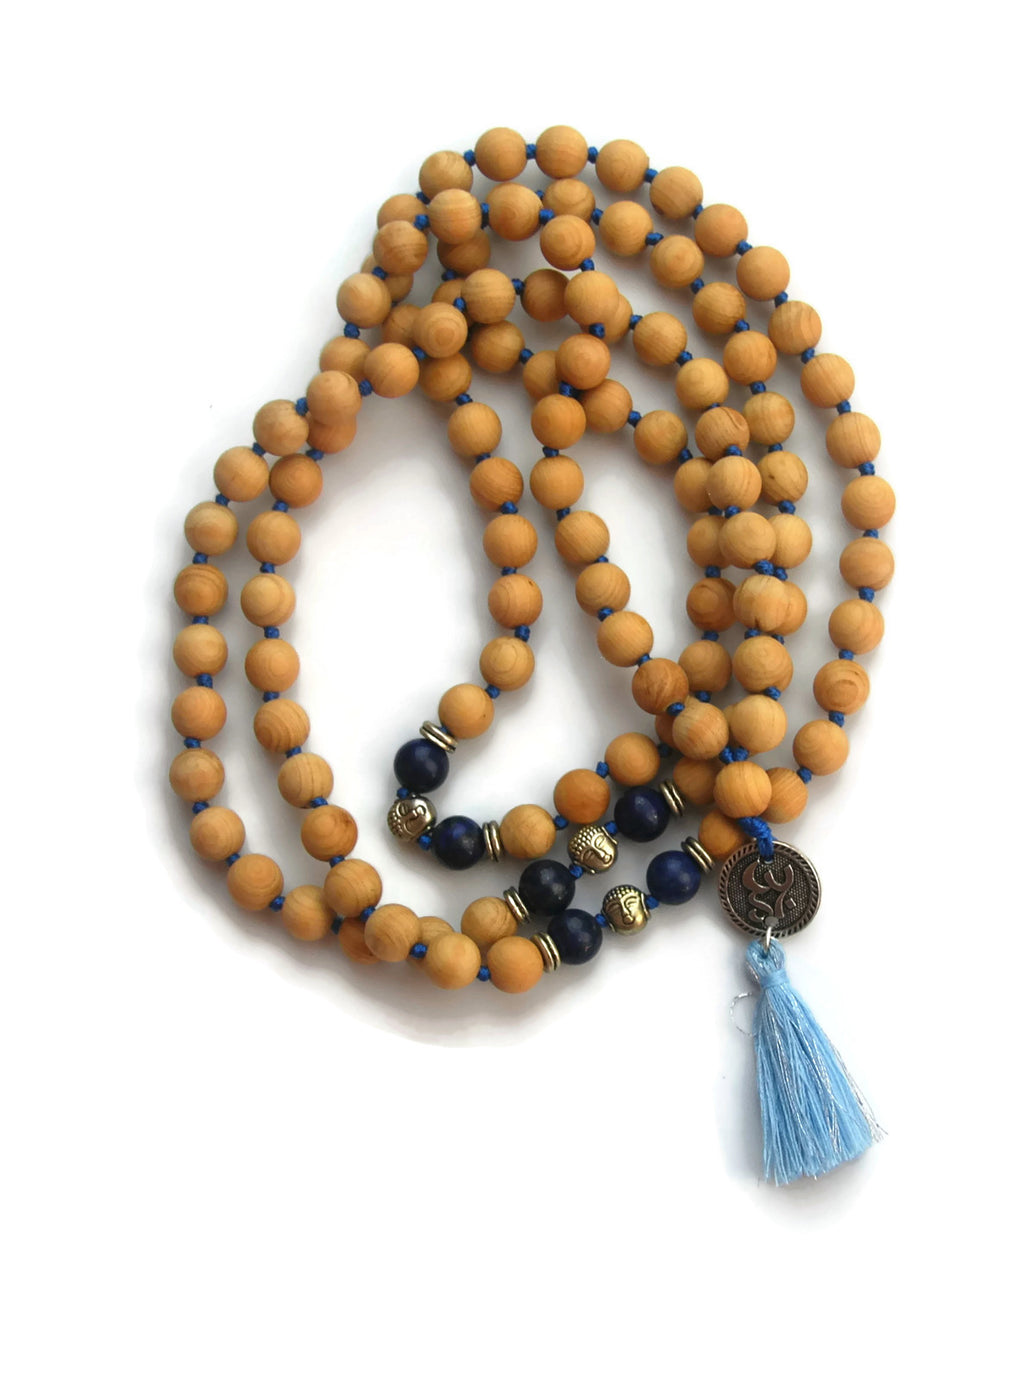 Om Line 8mm Cypress Wood & Lapis Lazuli Traditional Knotted 108 Meditation Mala Necklace with Om Charm Pendant Third Eye Chakra